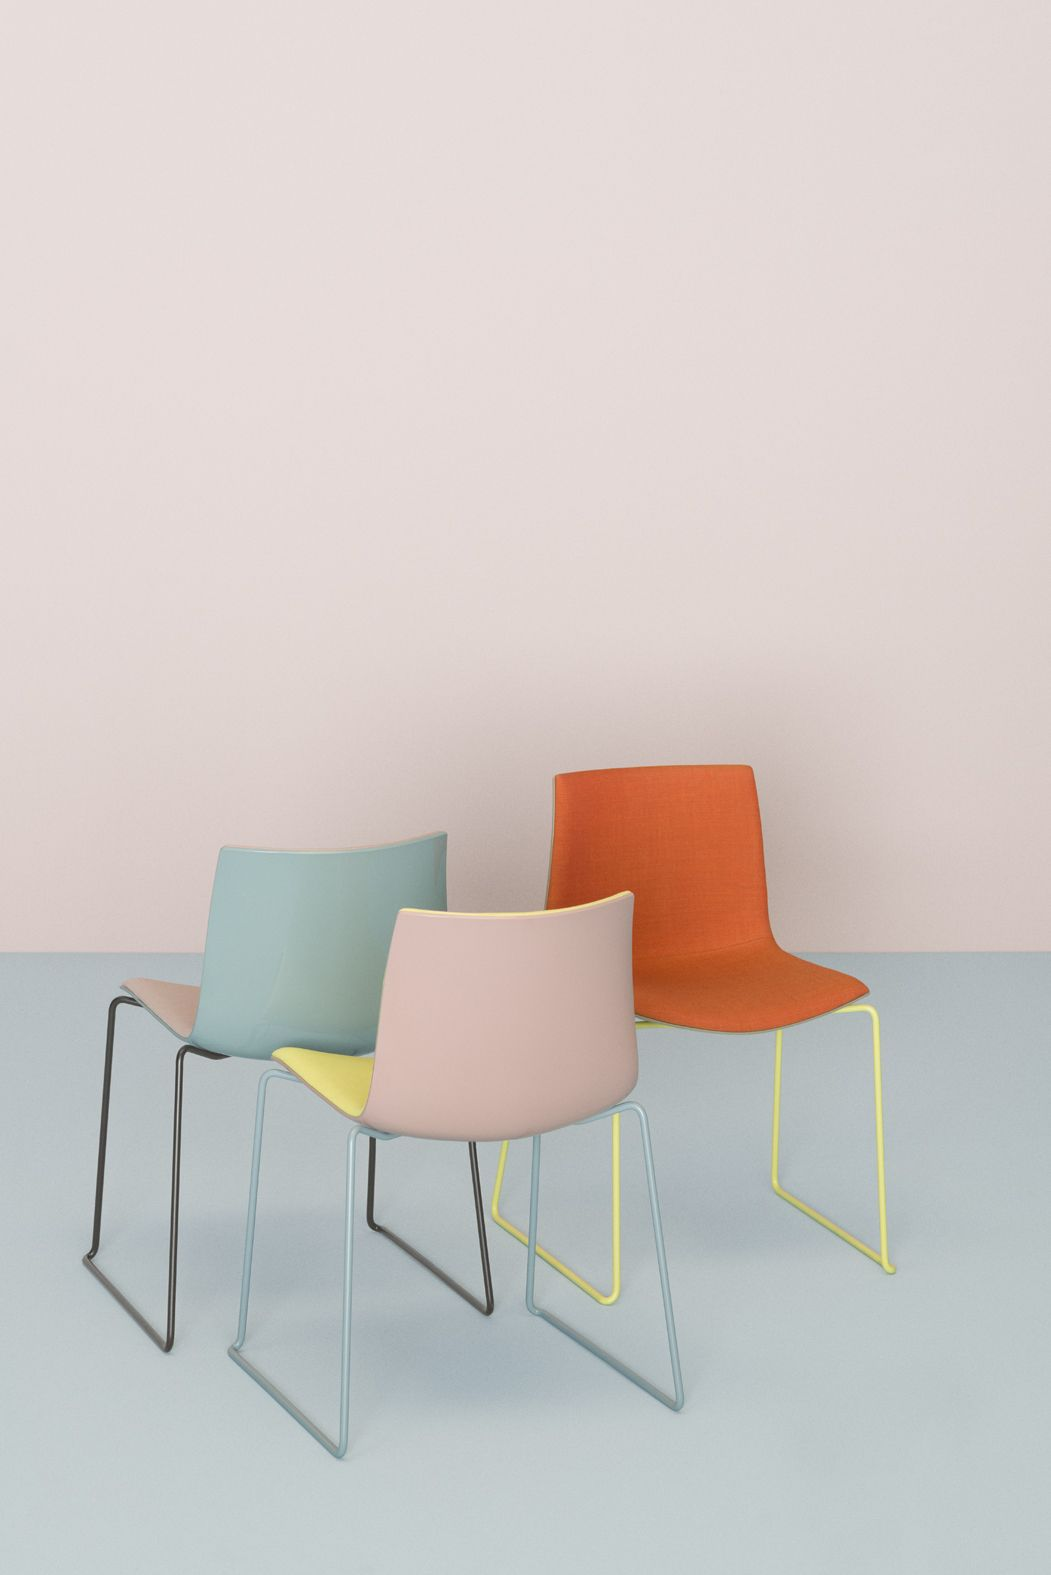 Chair Design Brands Baby Bath Asda 10 Designers And To Watch At Salone Del Mobile New Good Arper Office Chairs